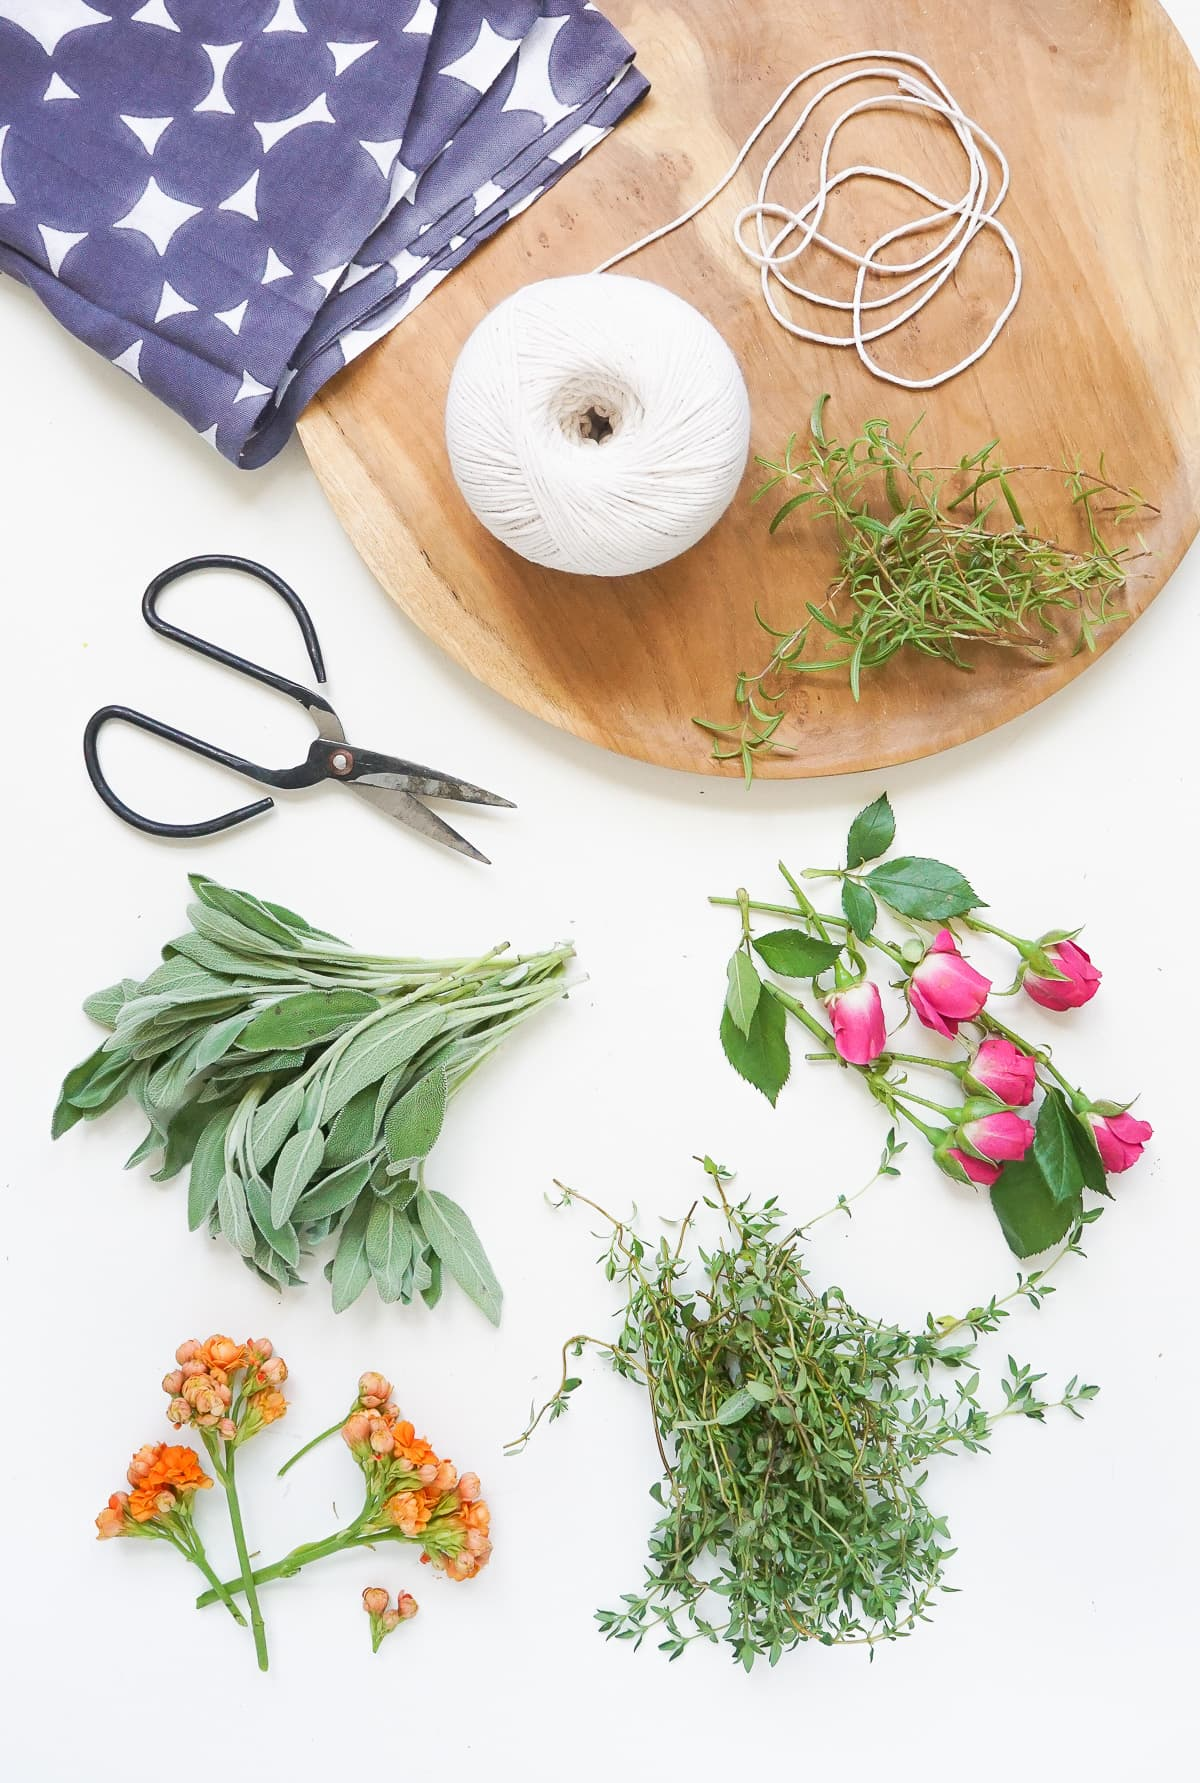 DIY Fresh Floral and Herbal Incense Bundles by Ashley Rose of Sugar & Cloth, a top lifestyle blog in Houston, Texas